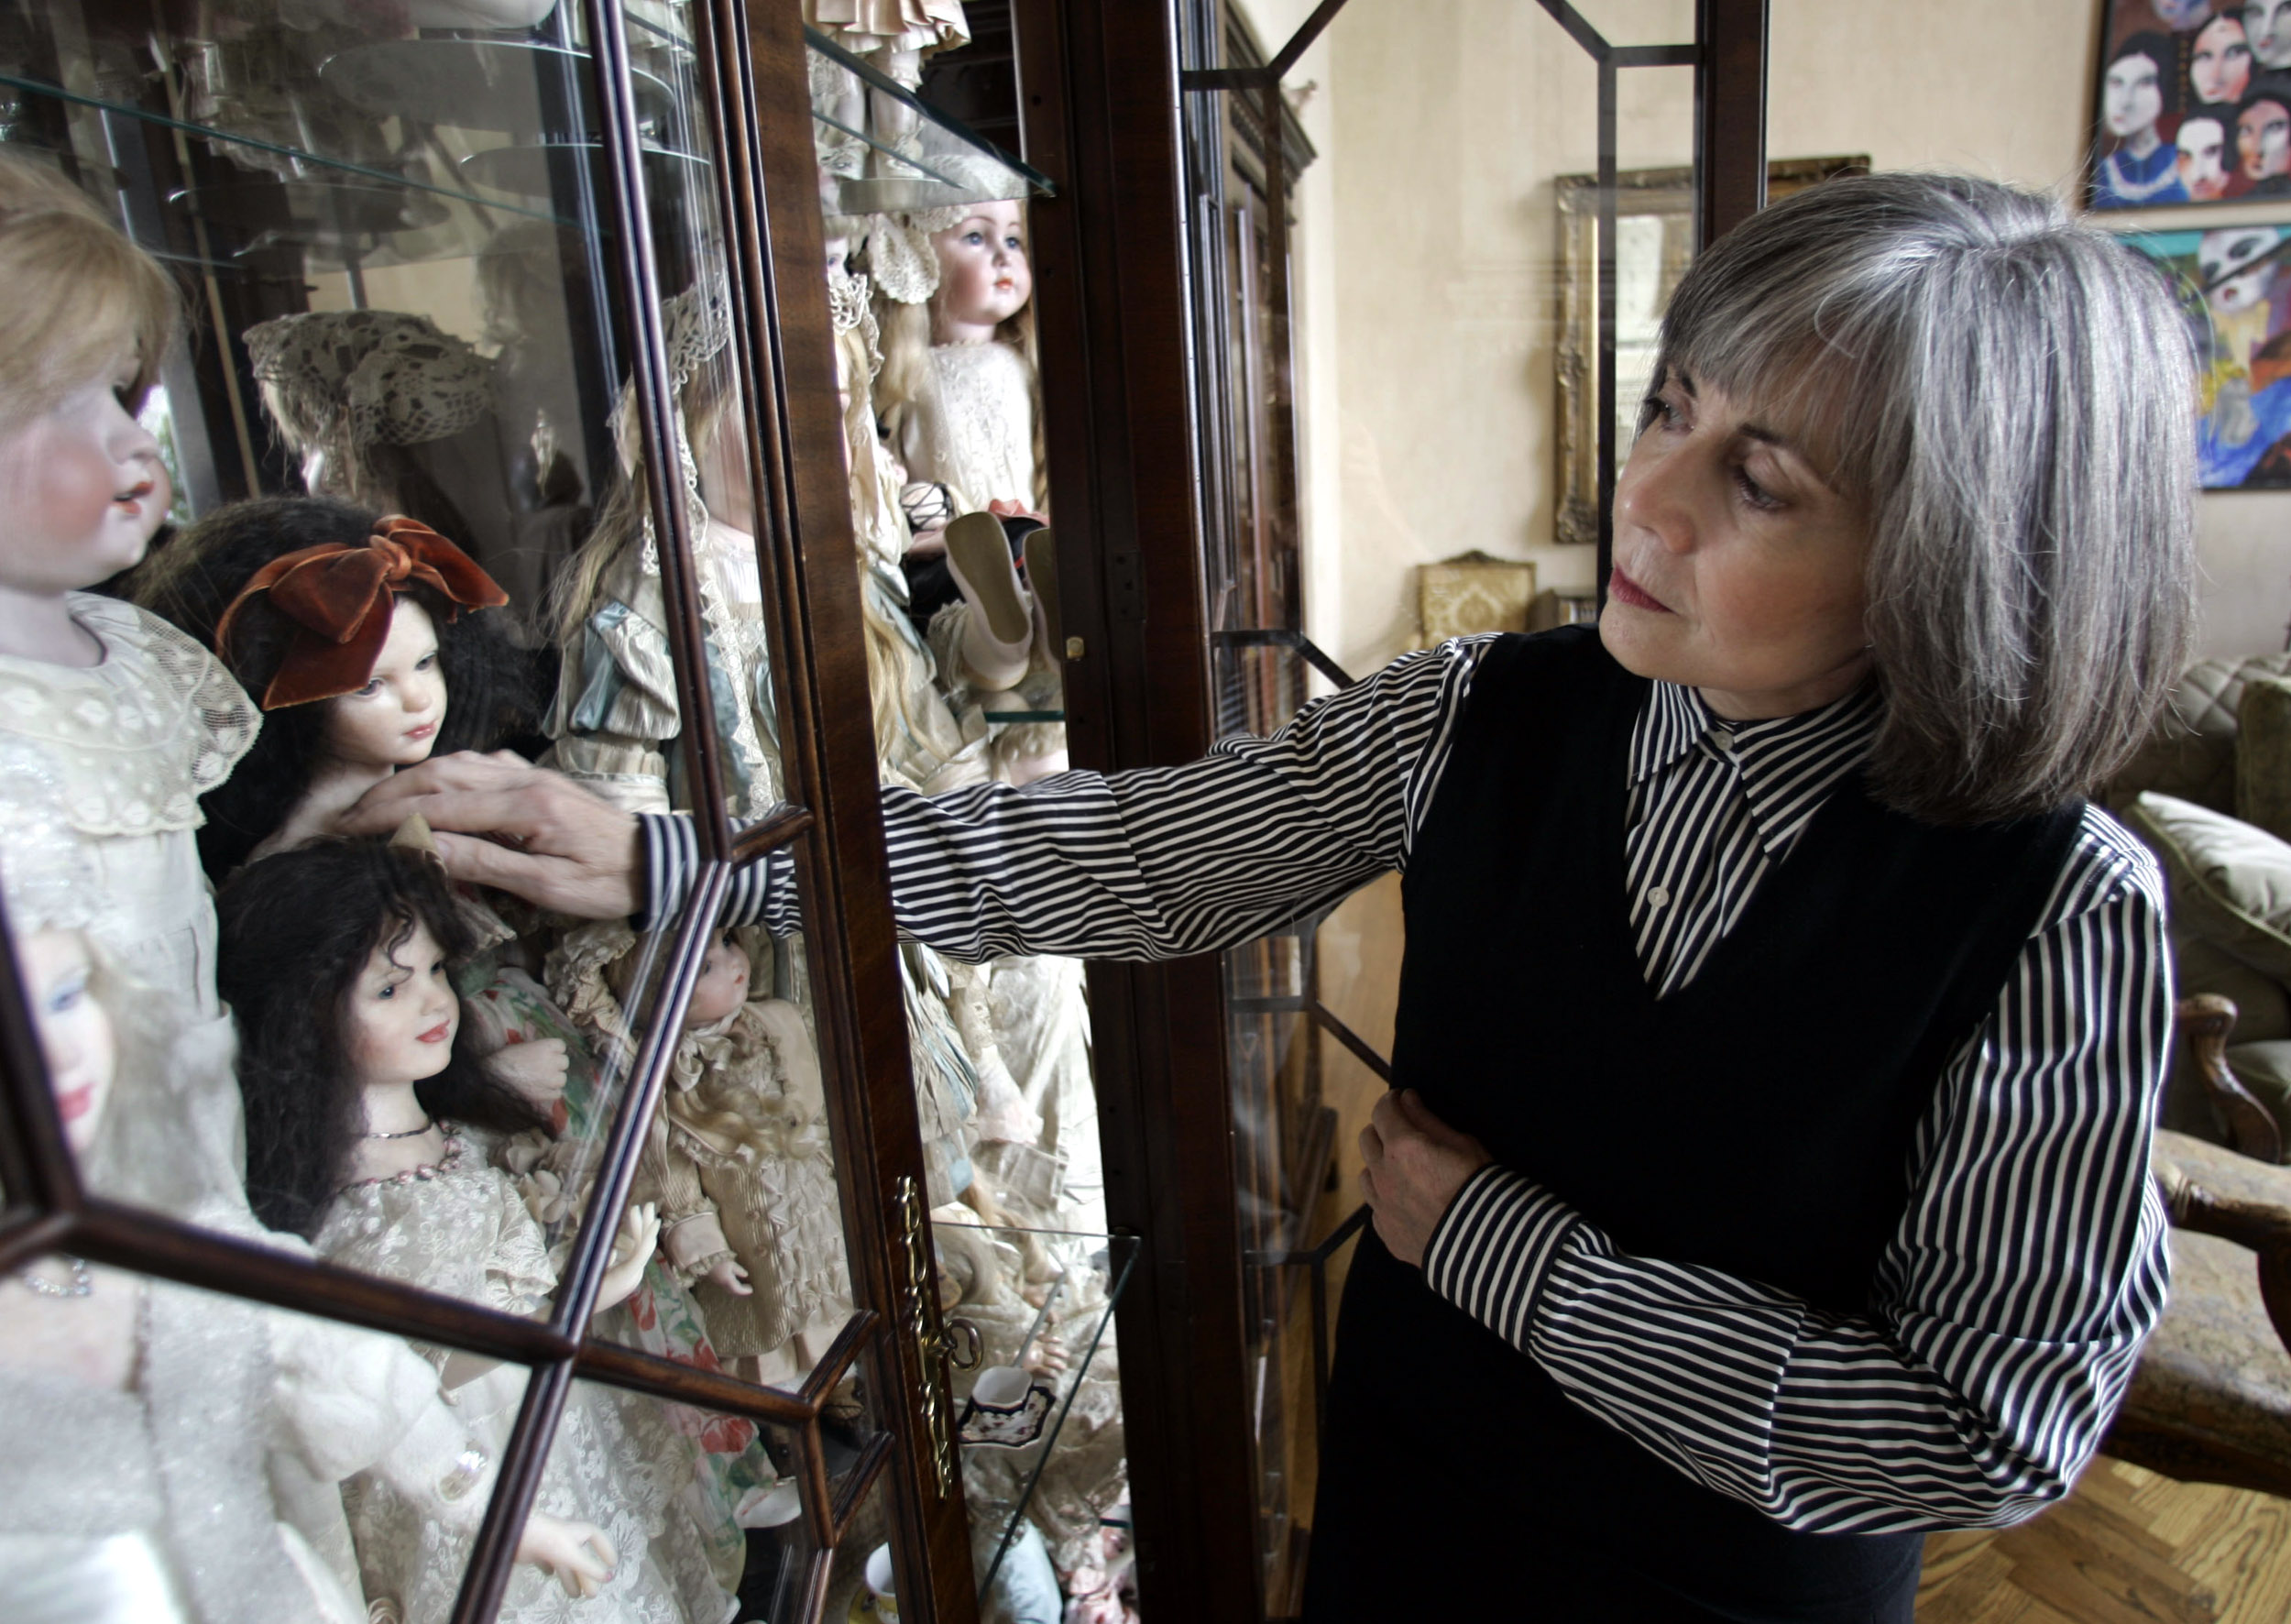 Vampire novelist Anne Rice's doll collection (yes, doll collection) is heading to Pa.